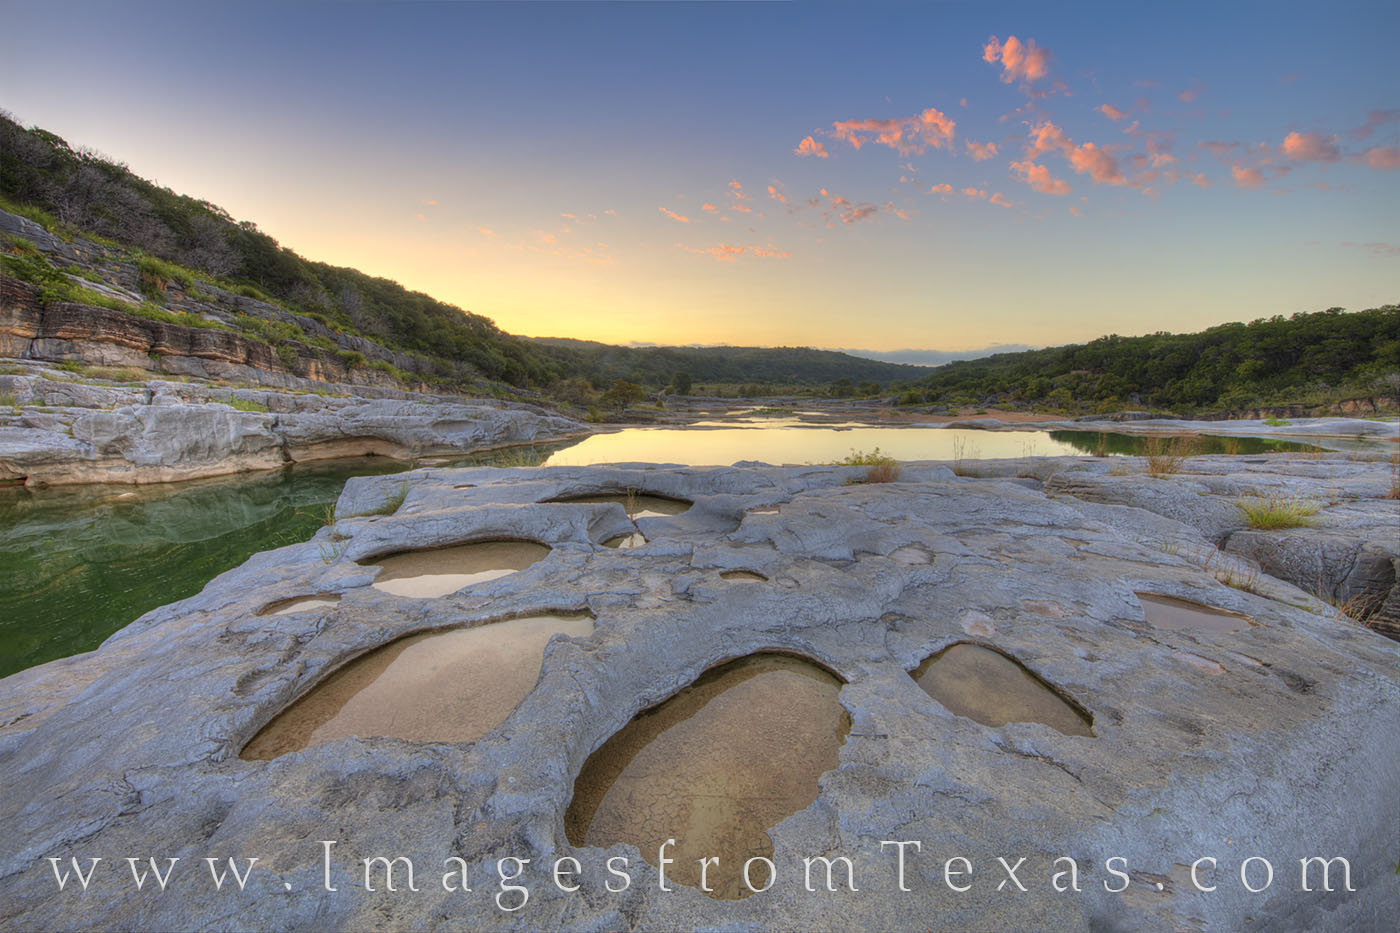 texas hill country, pedernales, pedernales river, hill country, texas state parks, texas parks, sunrise, texas, landscapes, photo